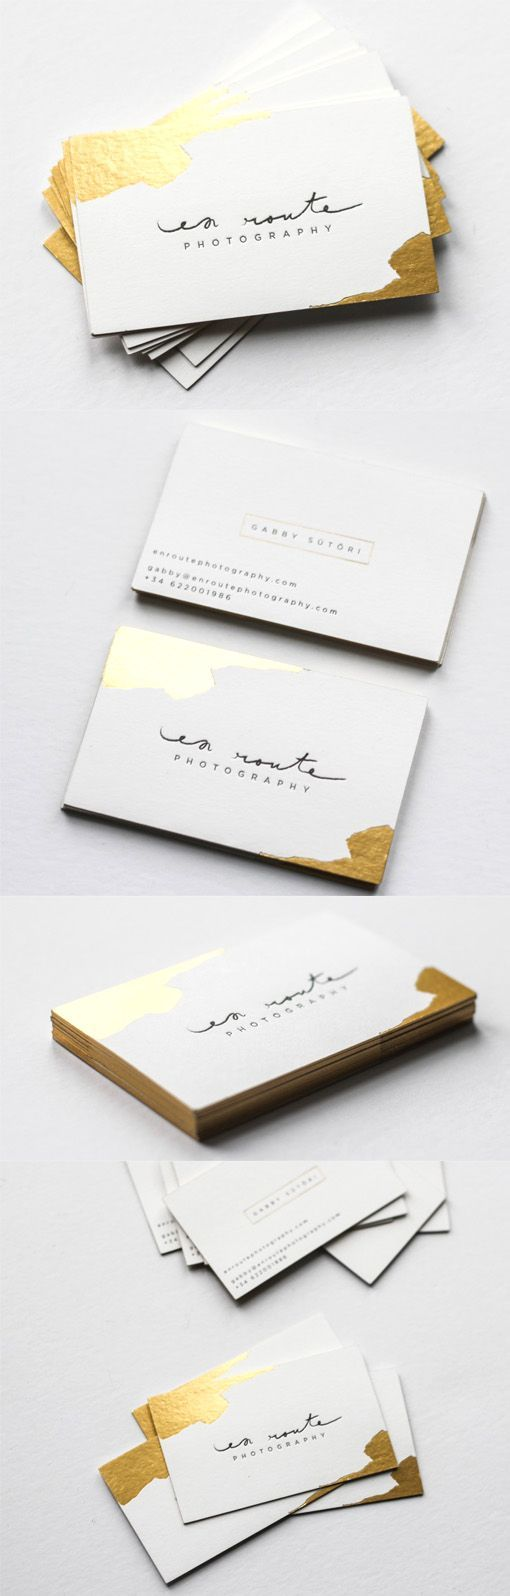 en route photography business card i love the use of the gold foil